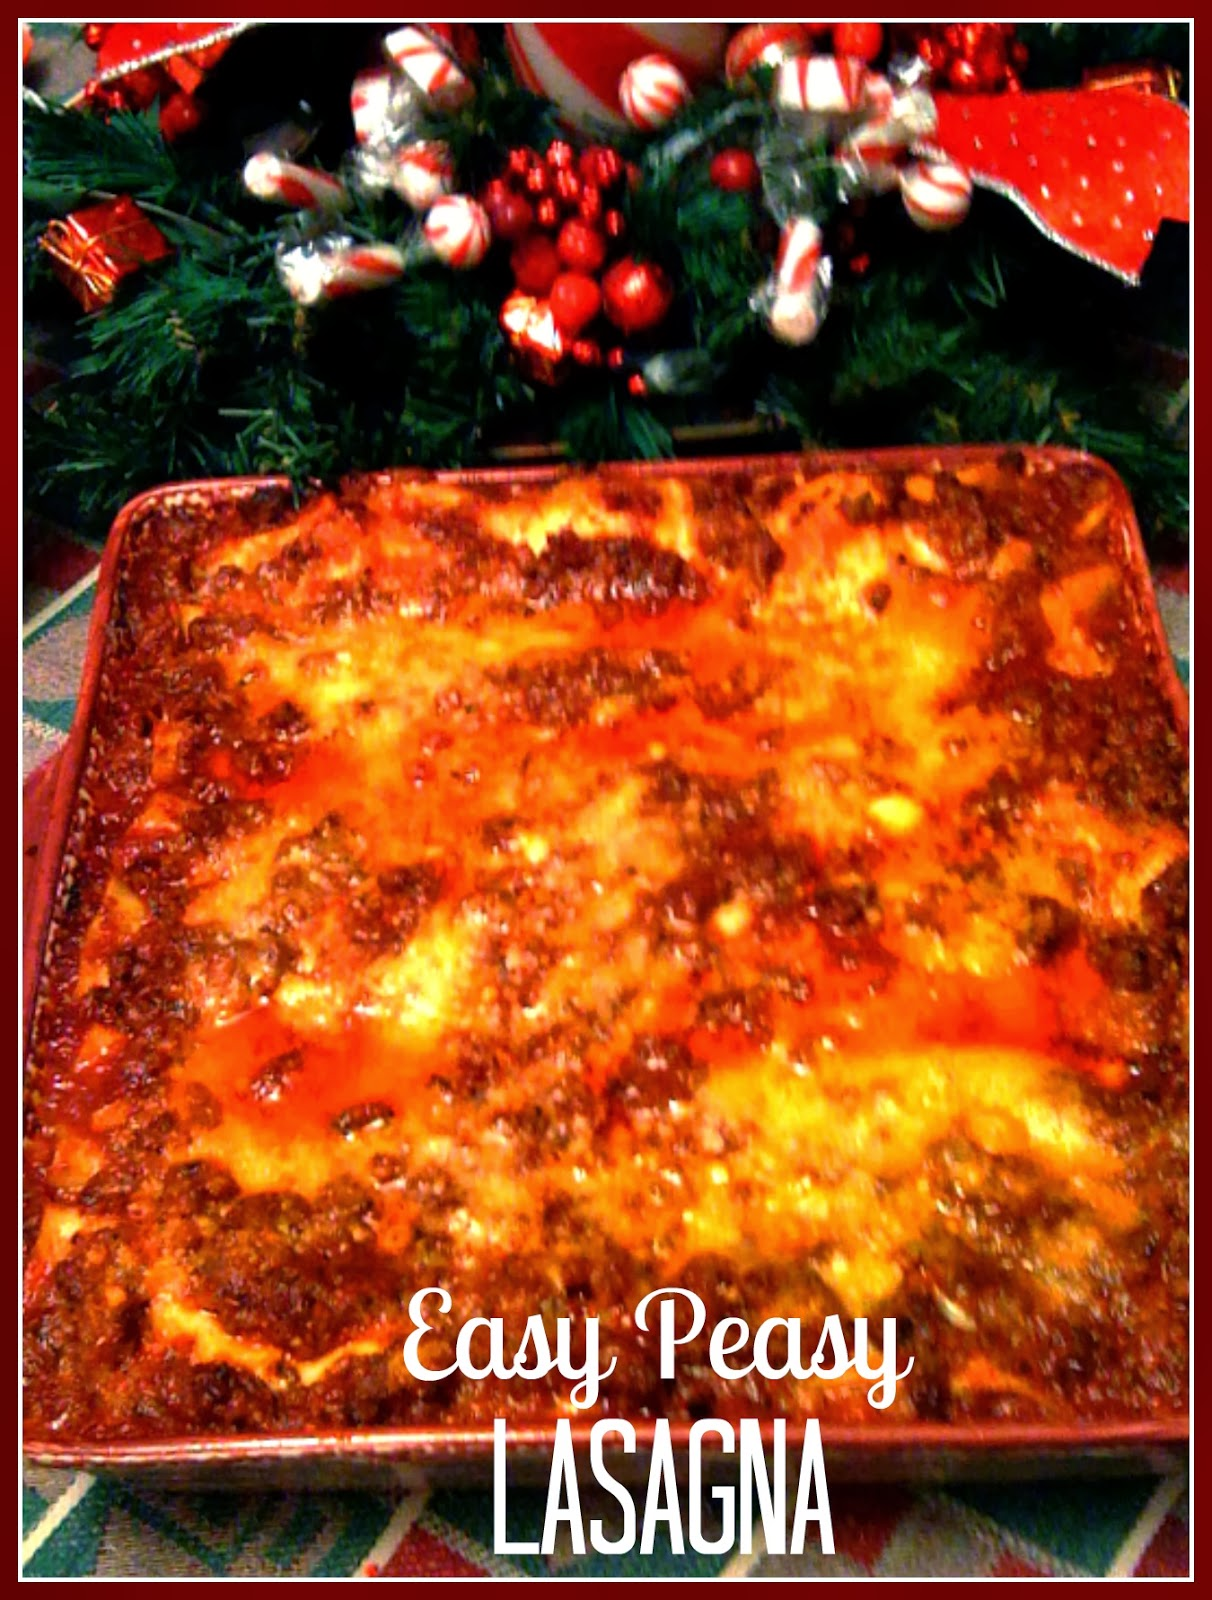 Easy Peasy And Fun: Sweet Tea And Cornbread: Easy Peasy Lasagna